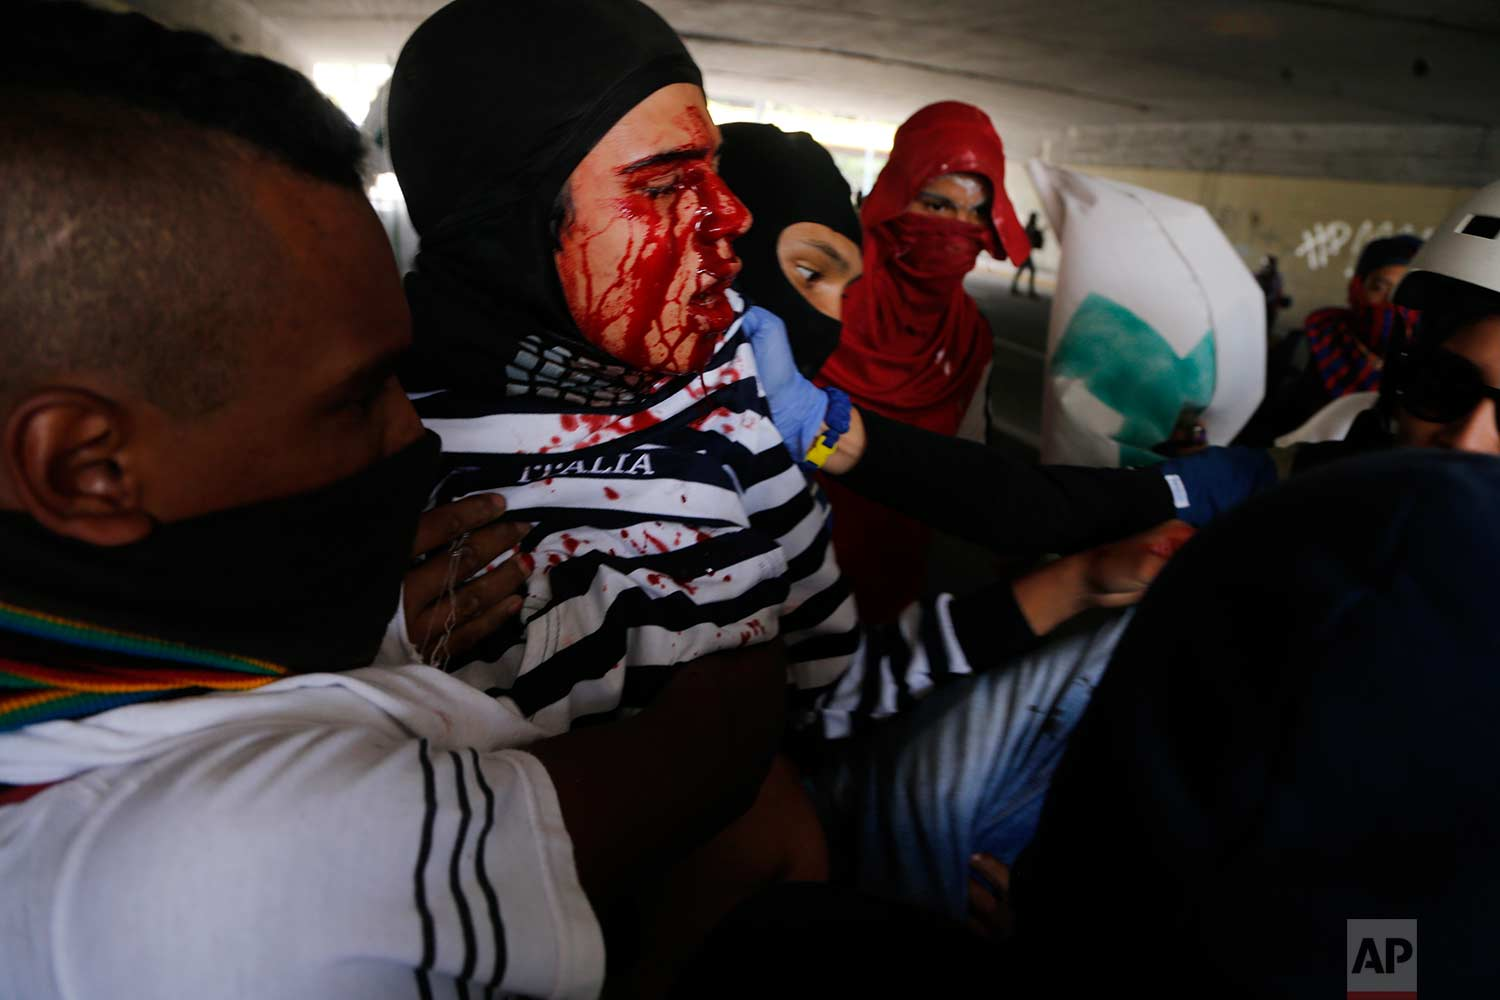 An injured anti-government protester is removed from clashes with security forces, during a call by the opposition to block roads for 10 hours in Caracas, Venezuela, Monday, July 10, 2017. (AP Photo/Ariana Cubillos)